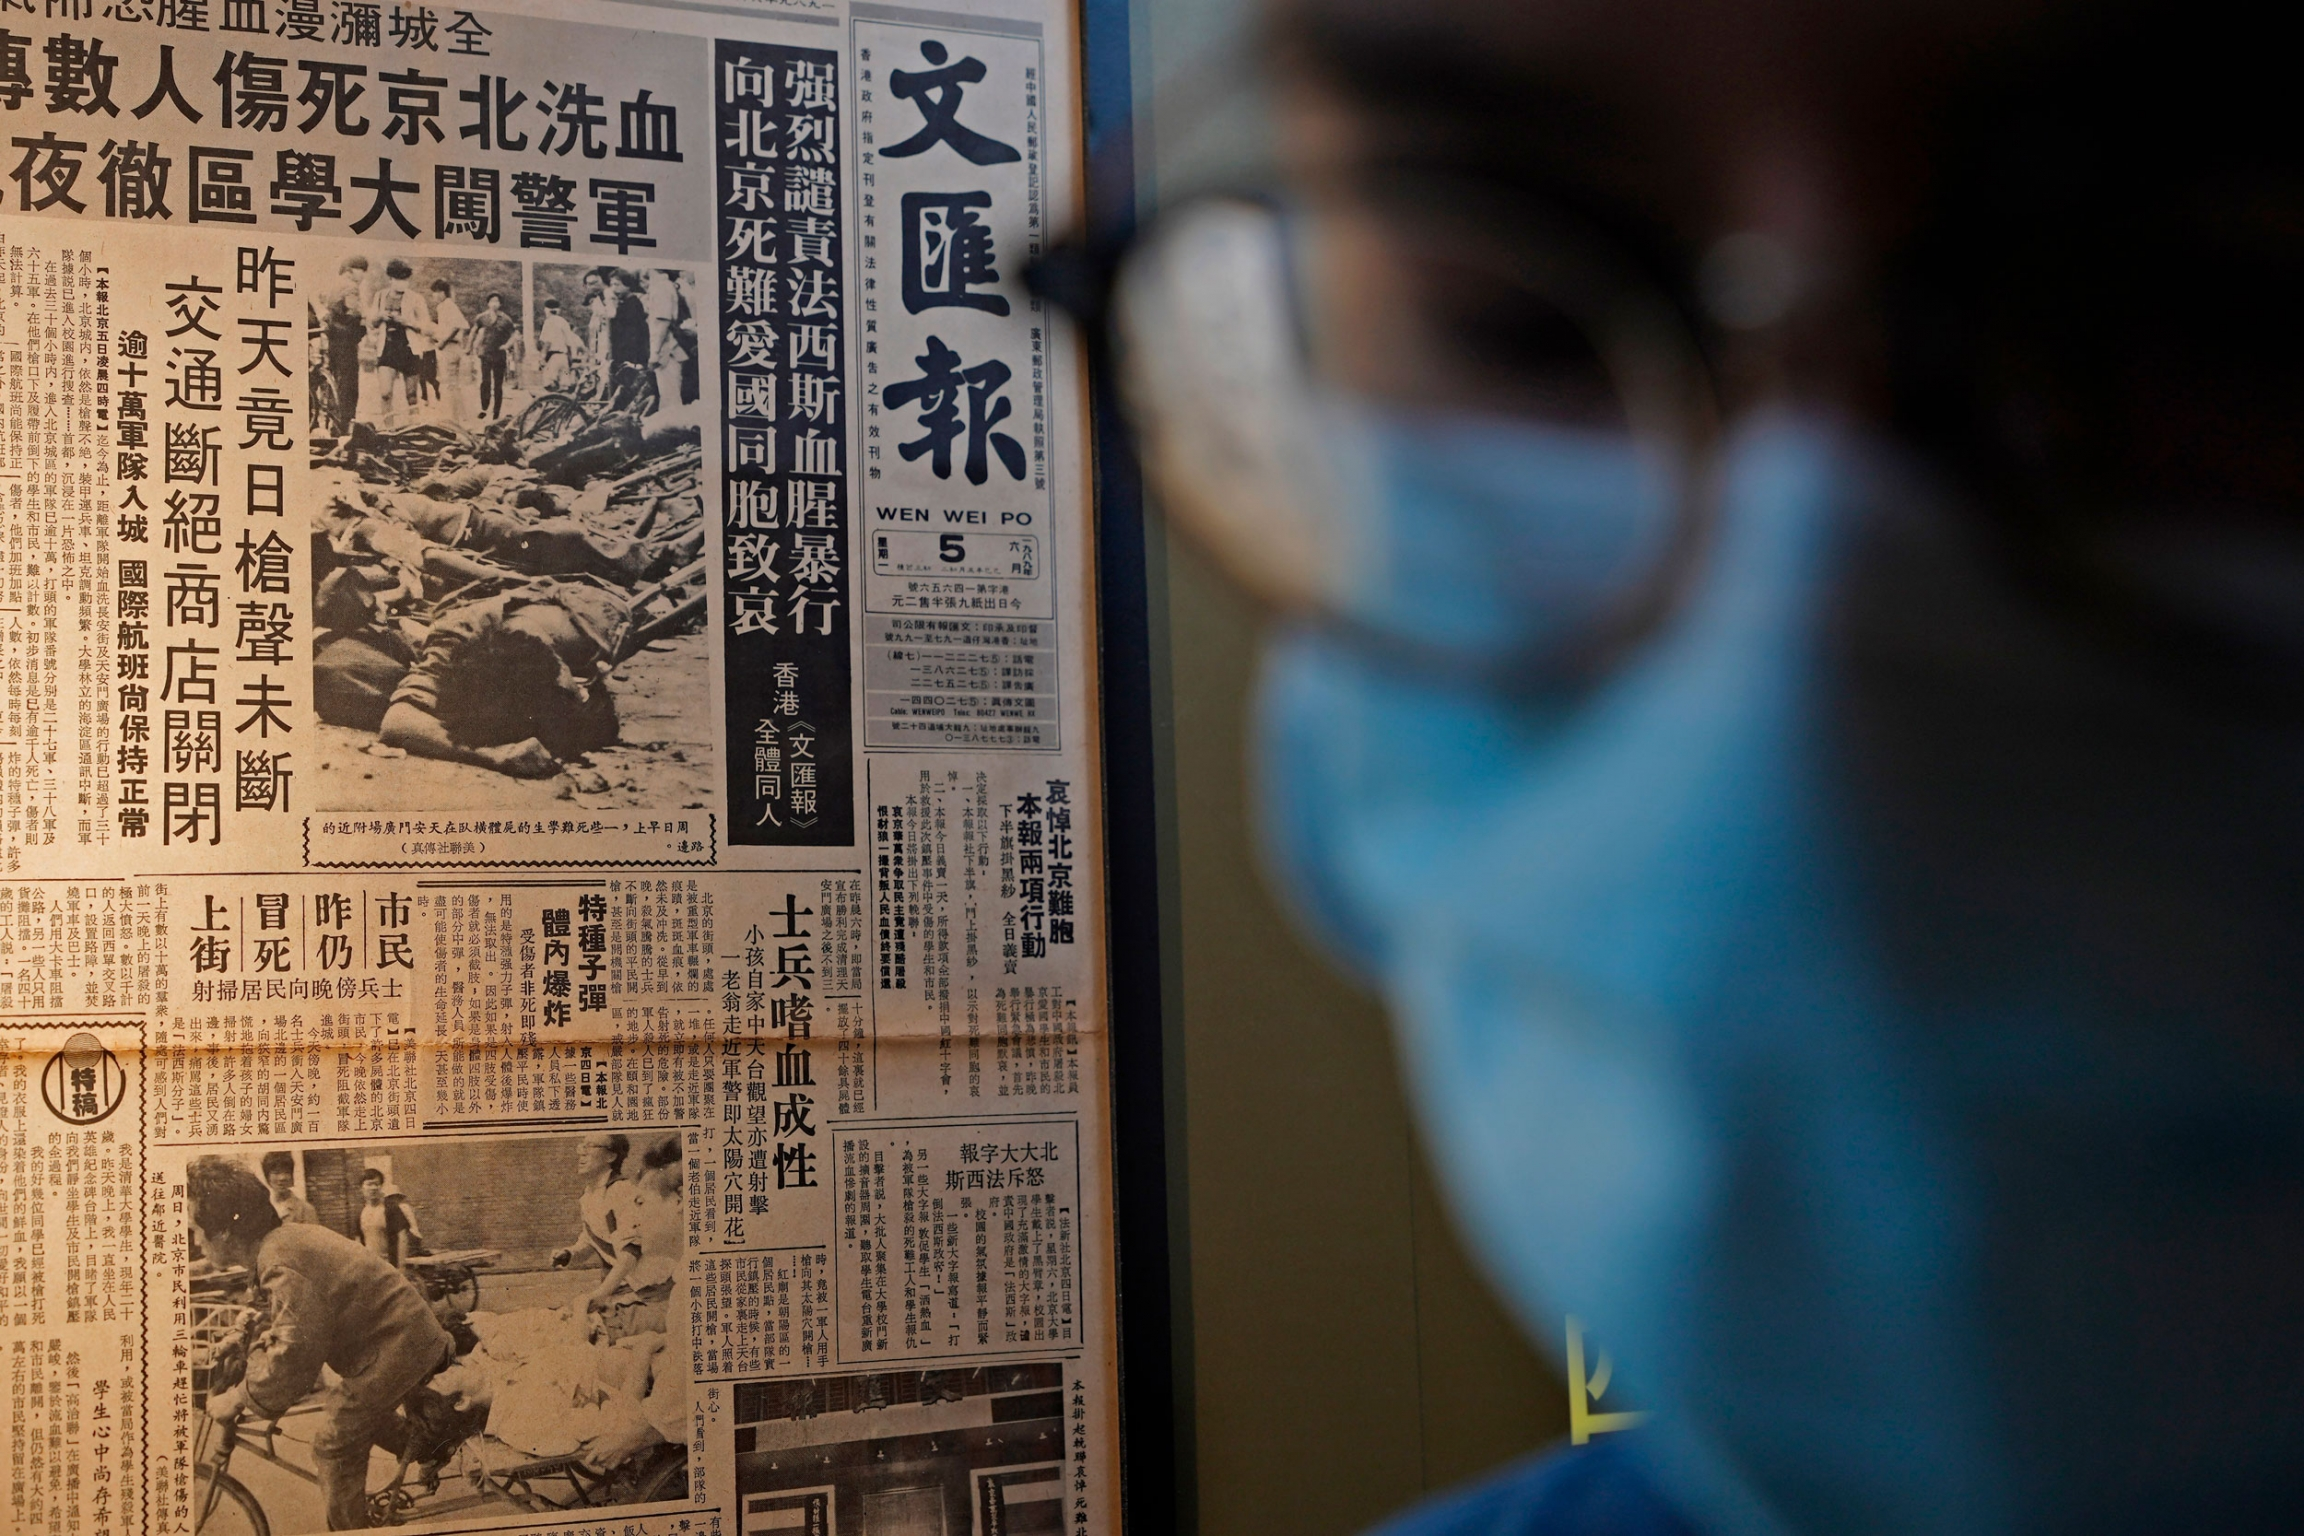 A newspaper clipping is shown in the background with a person in the near ground wearing a facemask and glasses is shown in blurred focus.